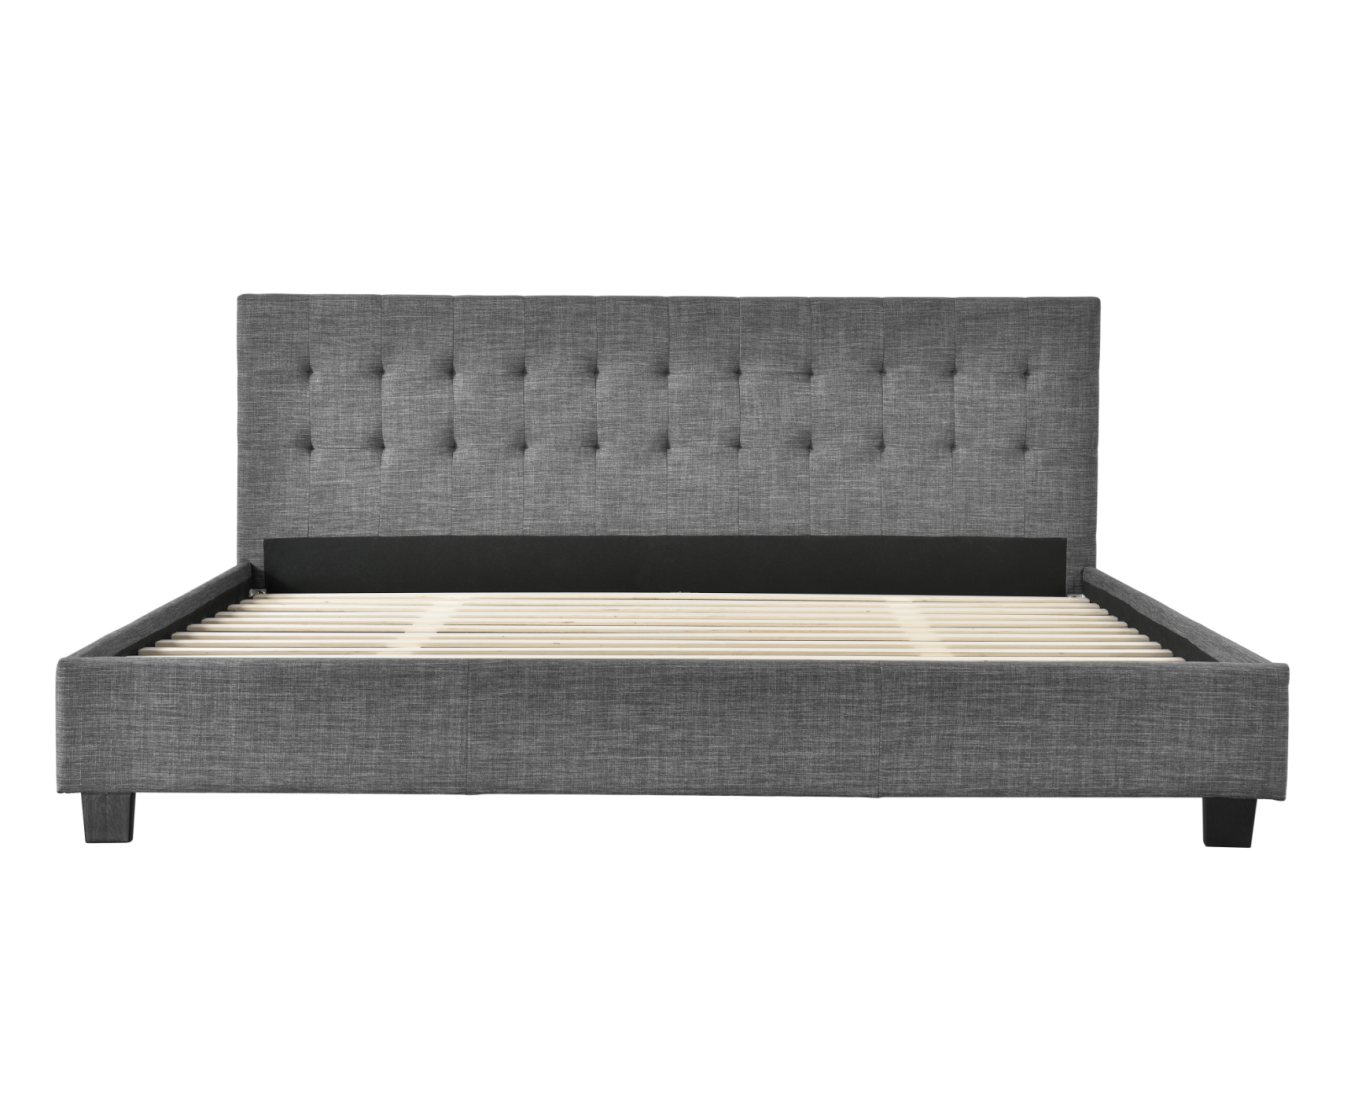 Bed Frame & Mattress Bundle (Super King, King, Queen) - Grayson